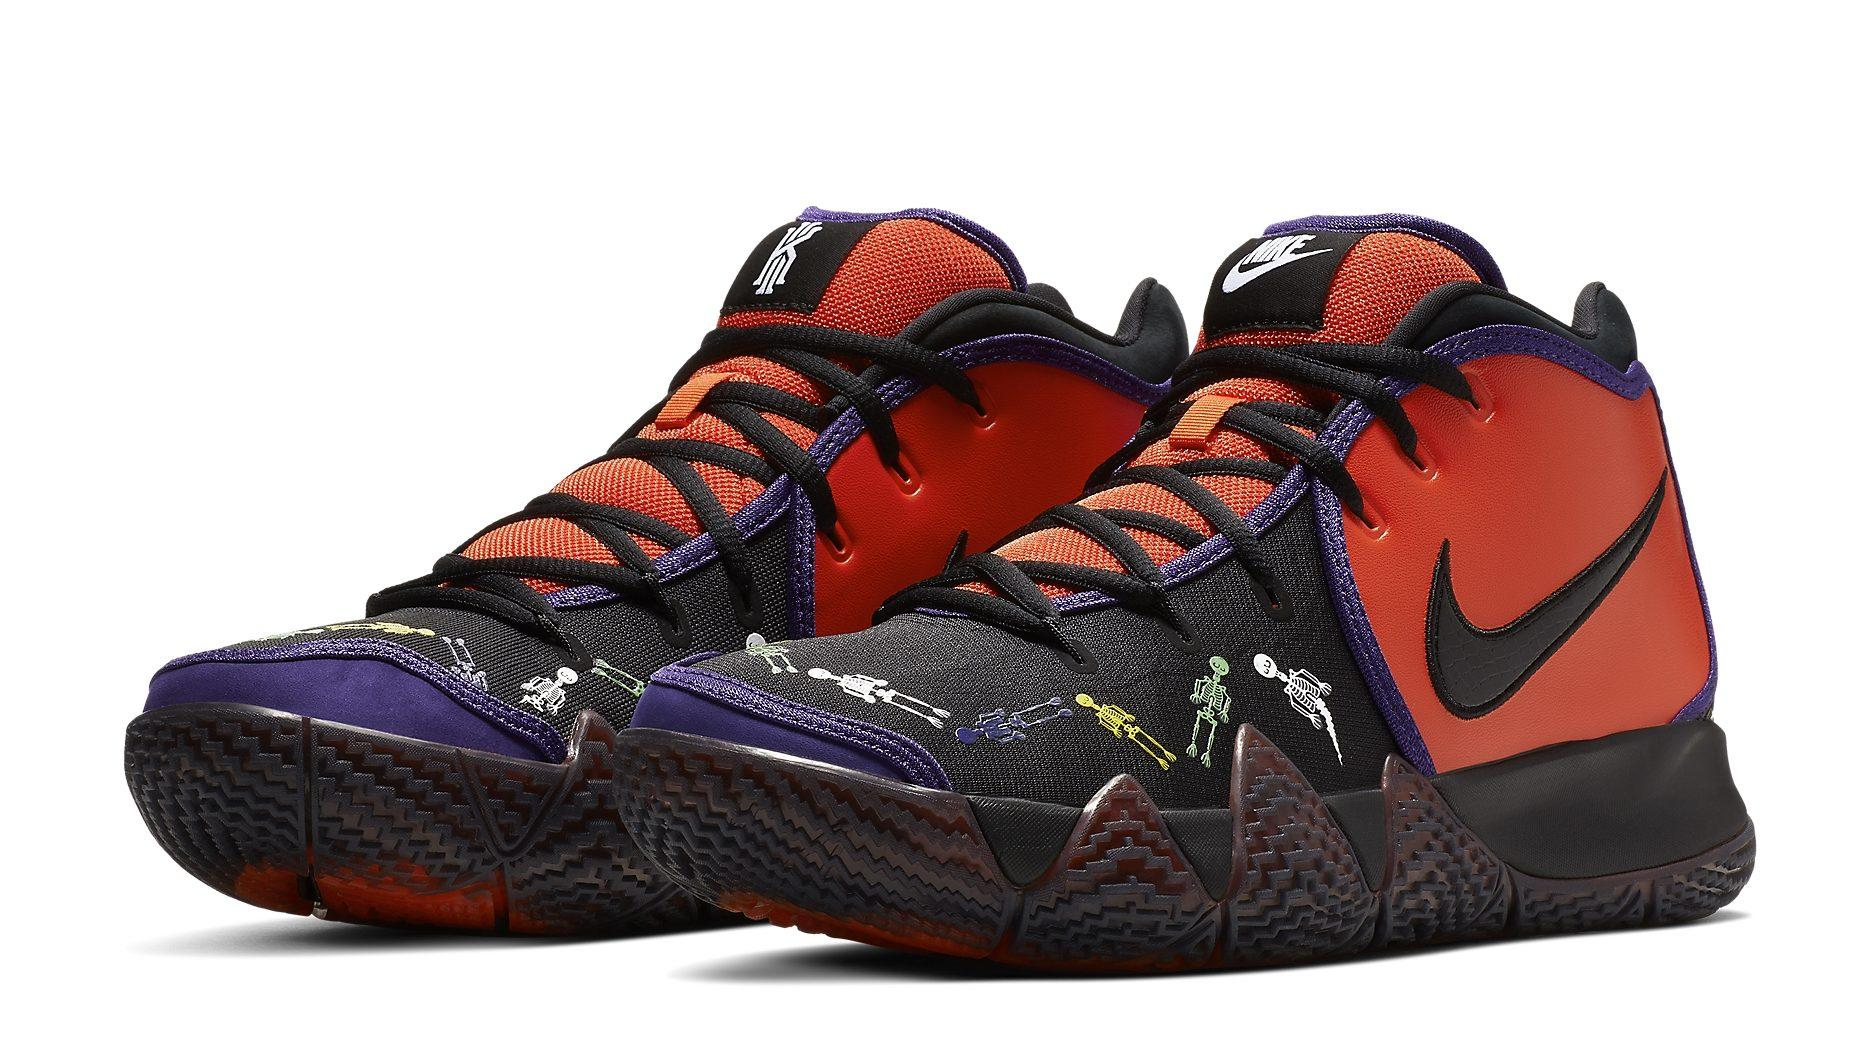 180357539c1 New Nike Kyrie 4 Sneakers Reference Day of the Dead With Cute Skeletons